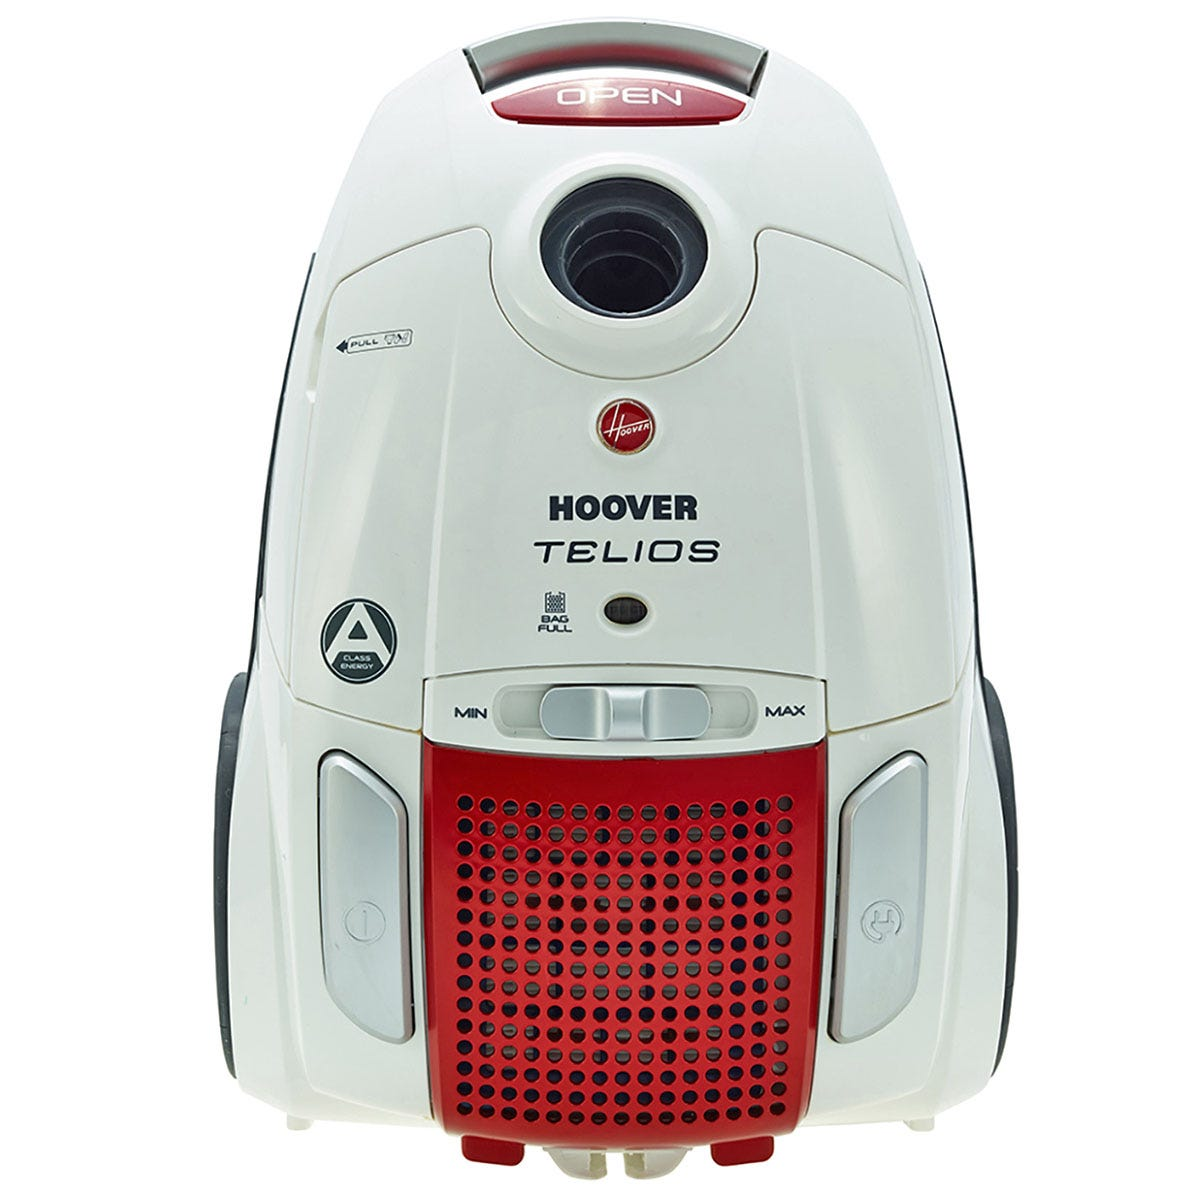 Hoover Telios Bagged Cylinder Vacuum 700w - White / Red